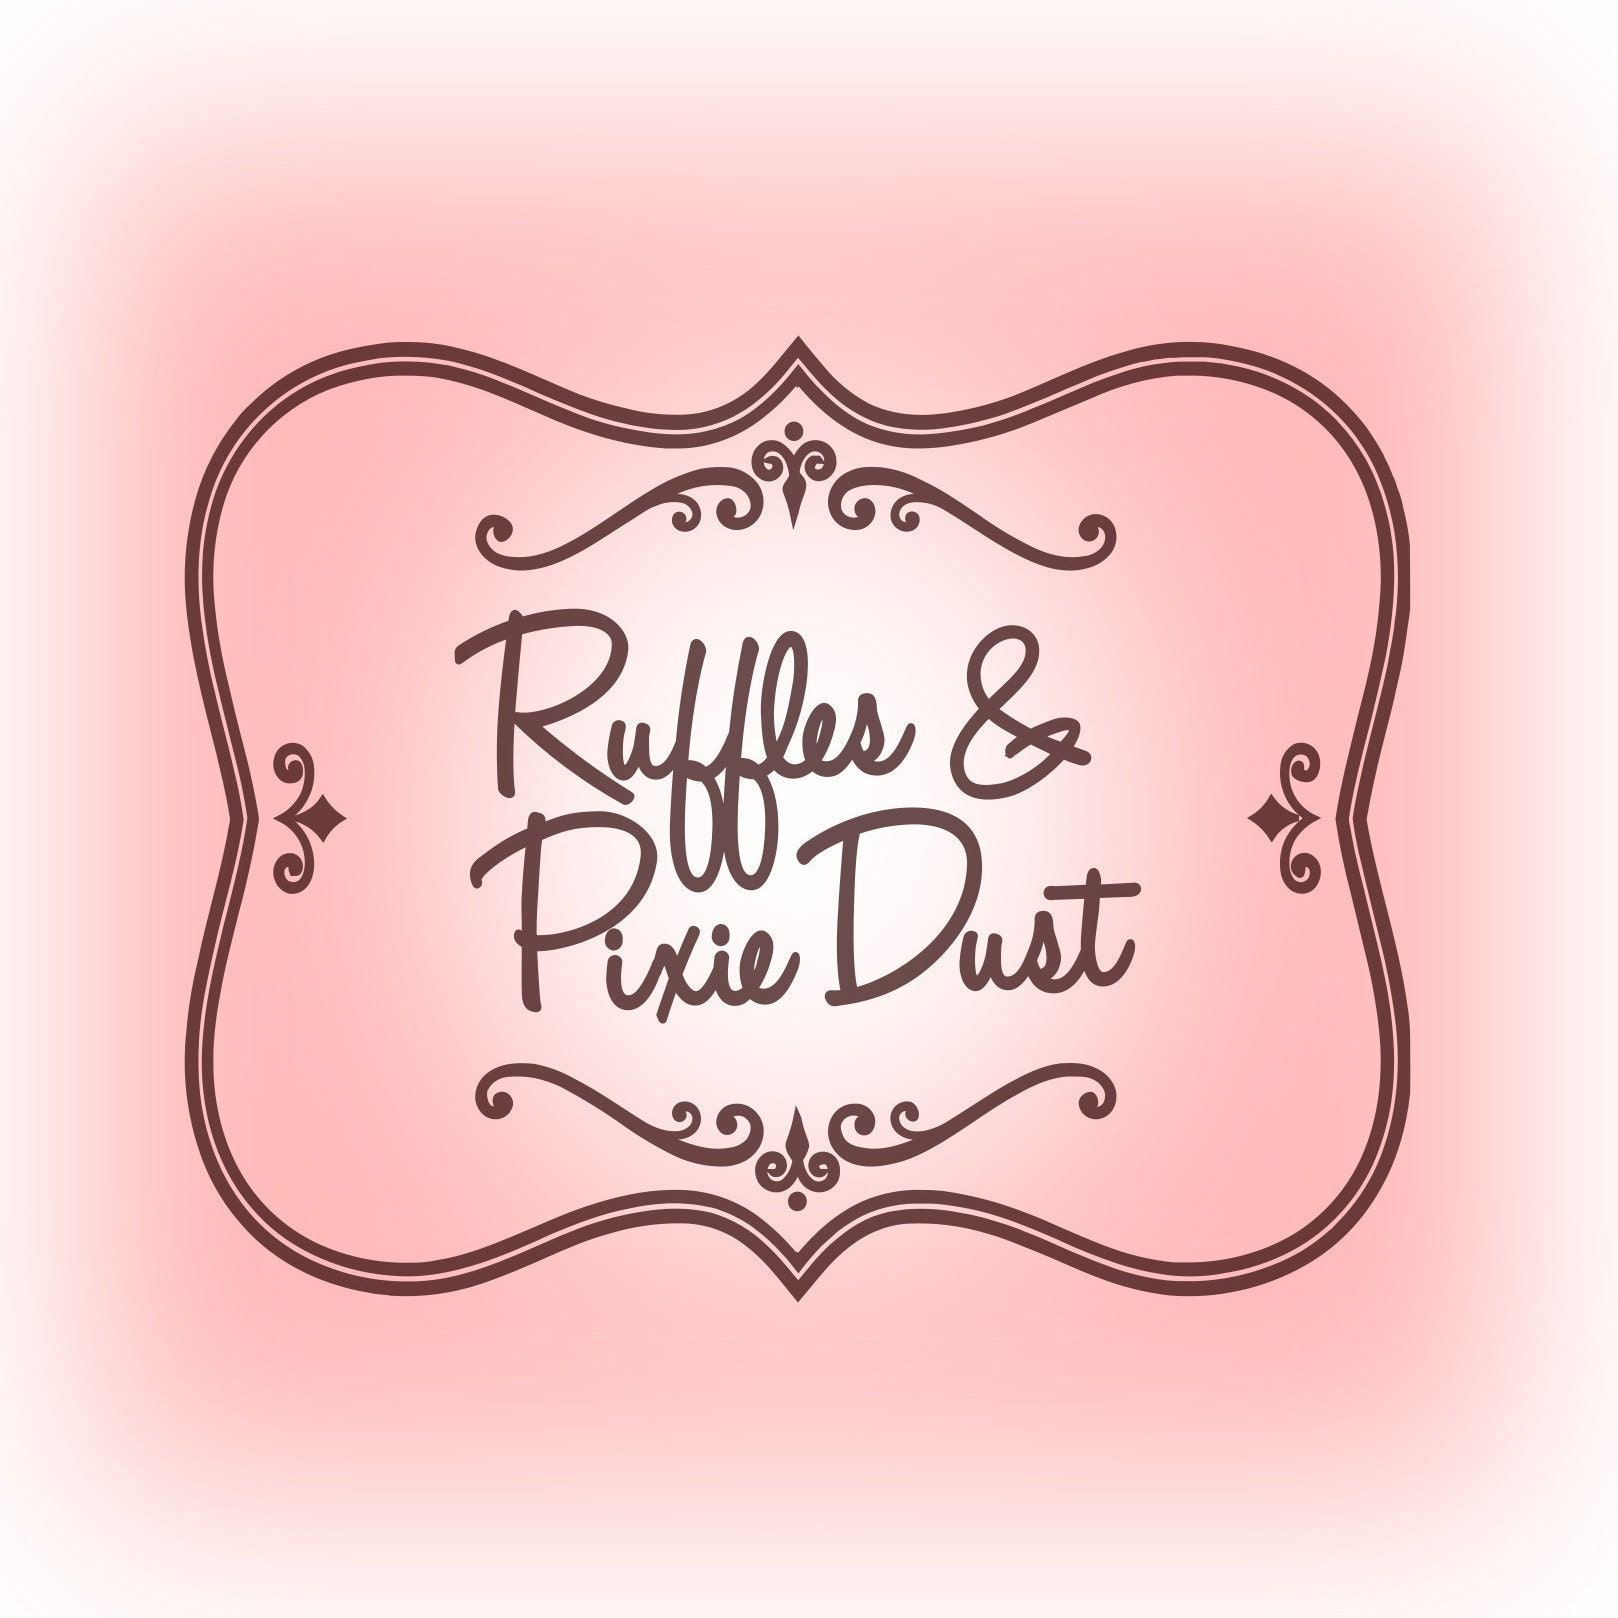 PM PIXIE DUST STUDDED STICKERS FOR CARDS OR CRAFTS